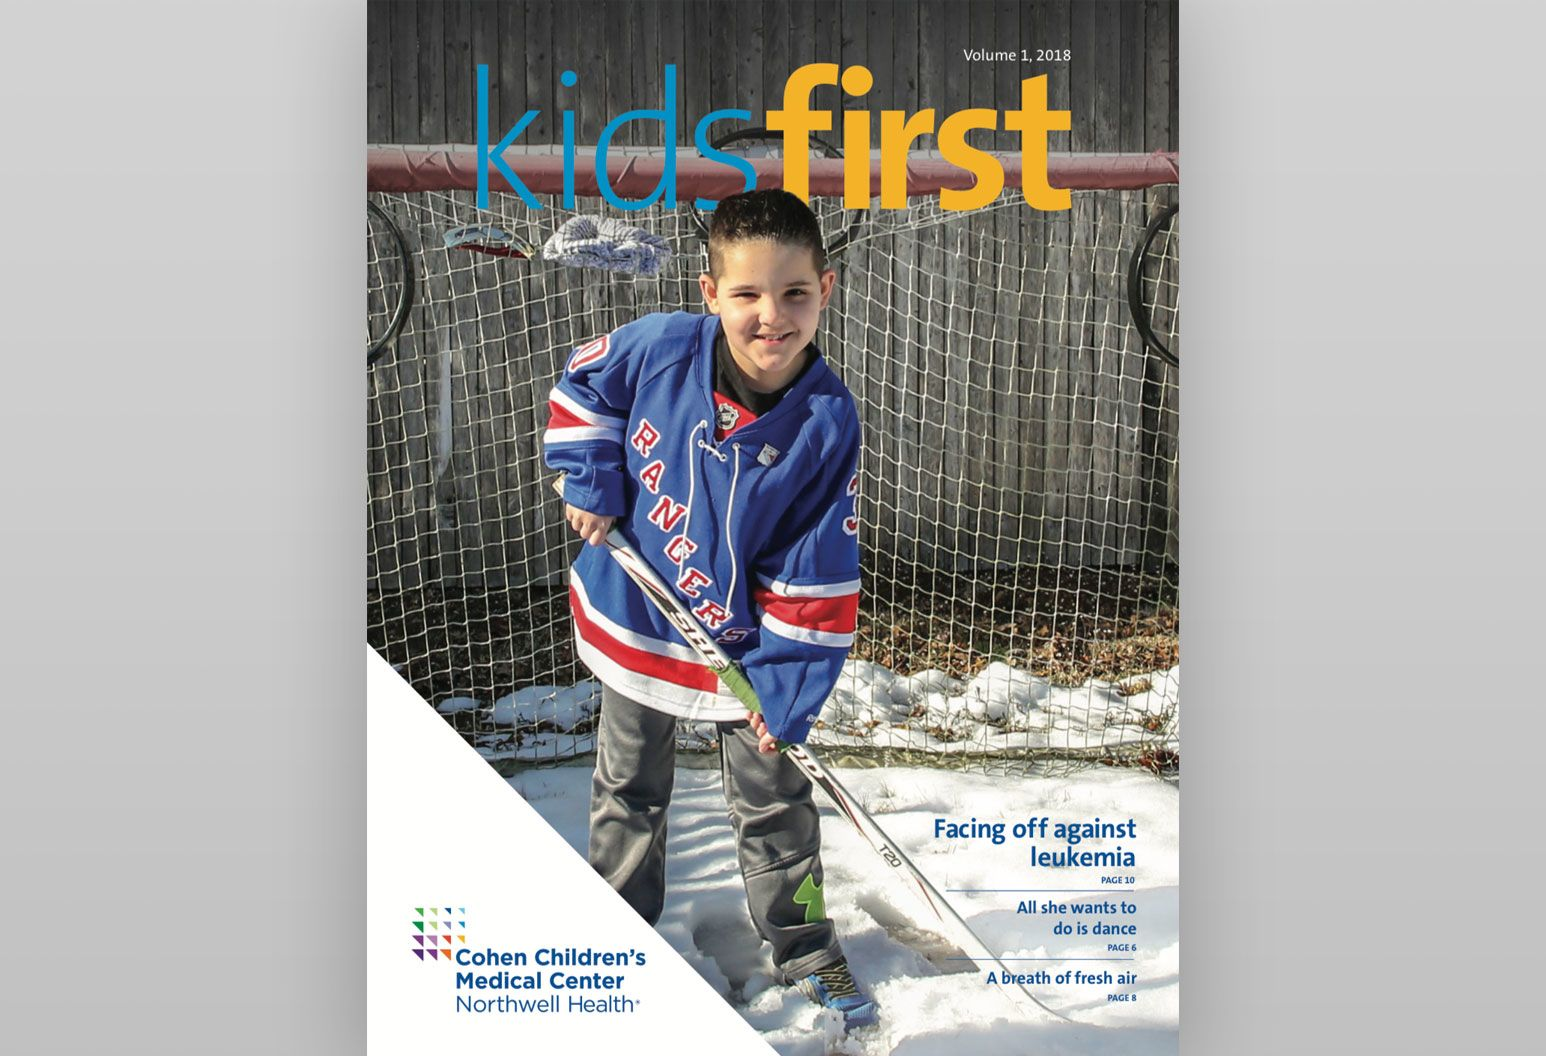 The cover of a 2018 issue of the Kids First pediatric newsletter features a young boy playing hockey